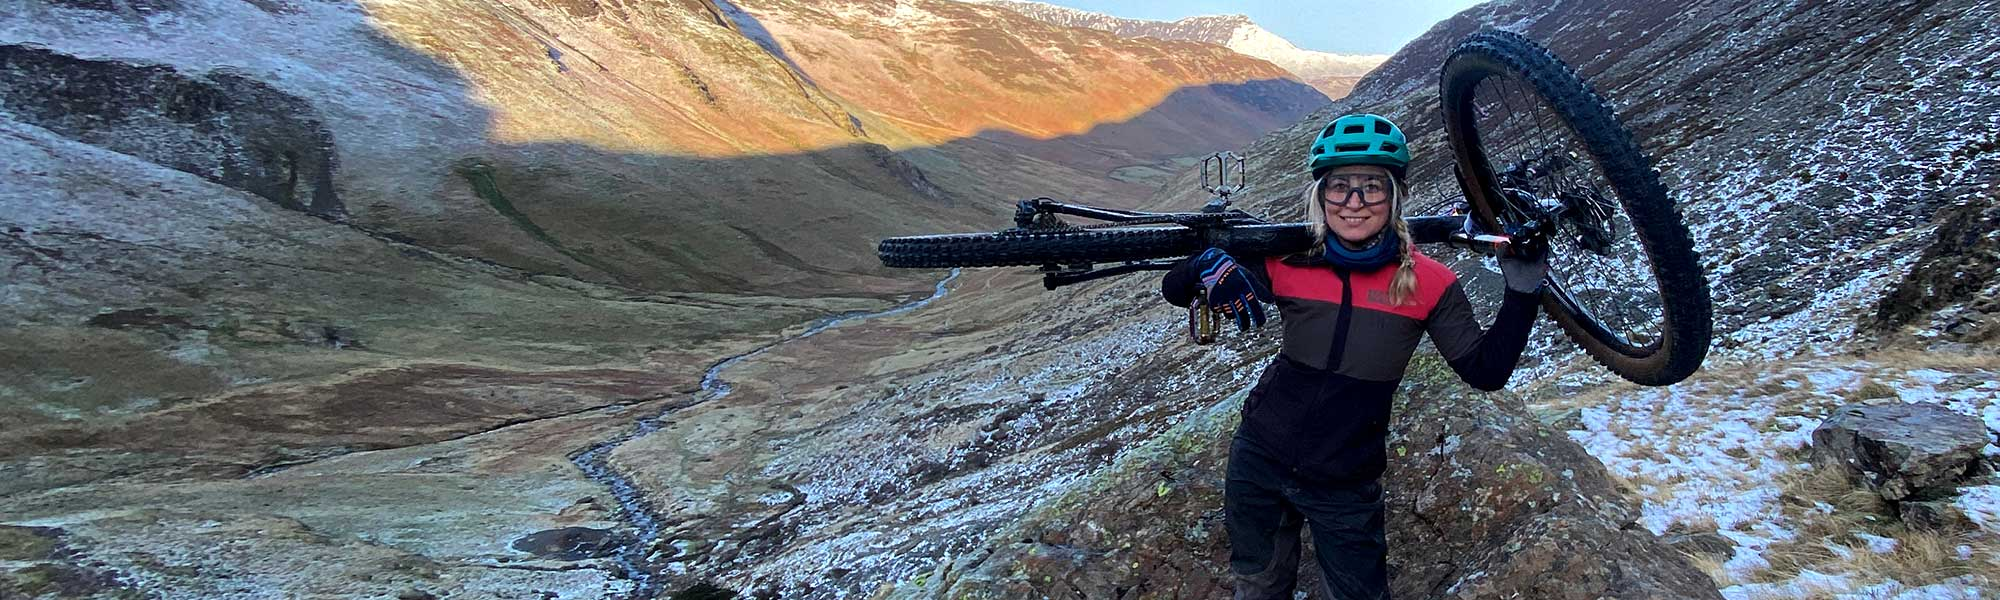 Kate O'Callaghan holding her bike across her shoulders in the mountains